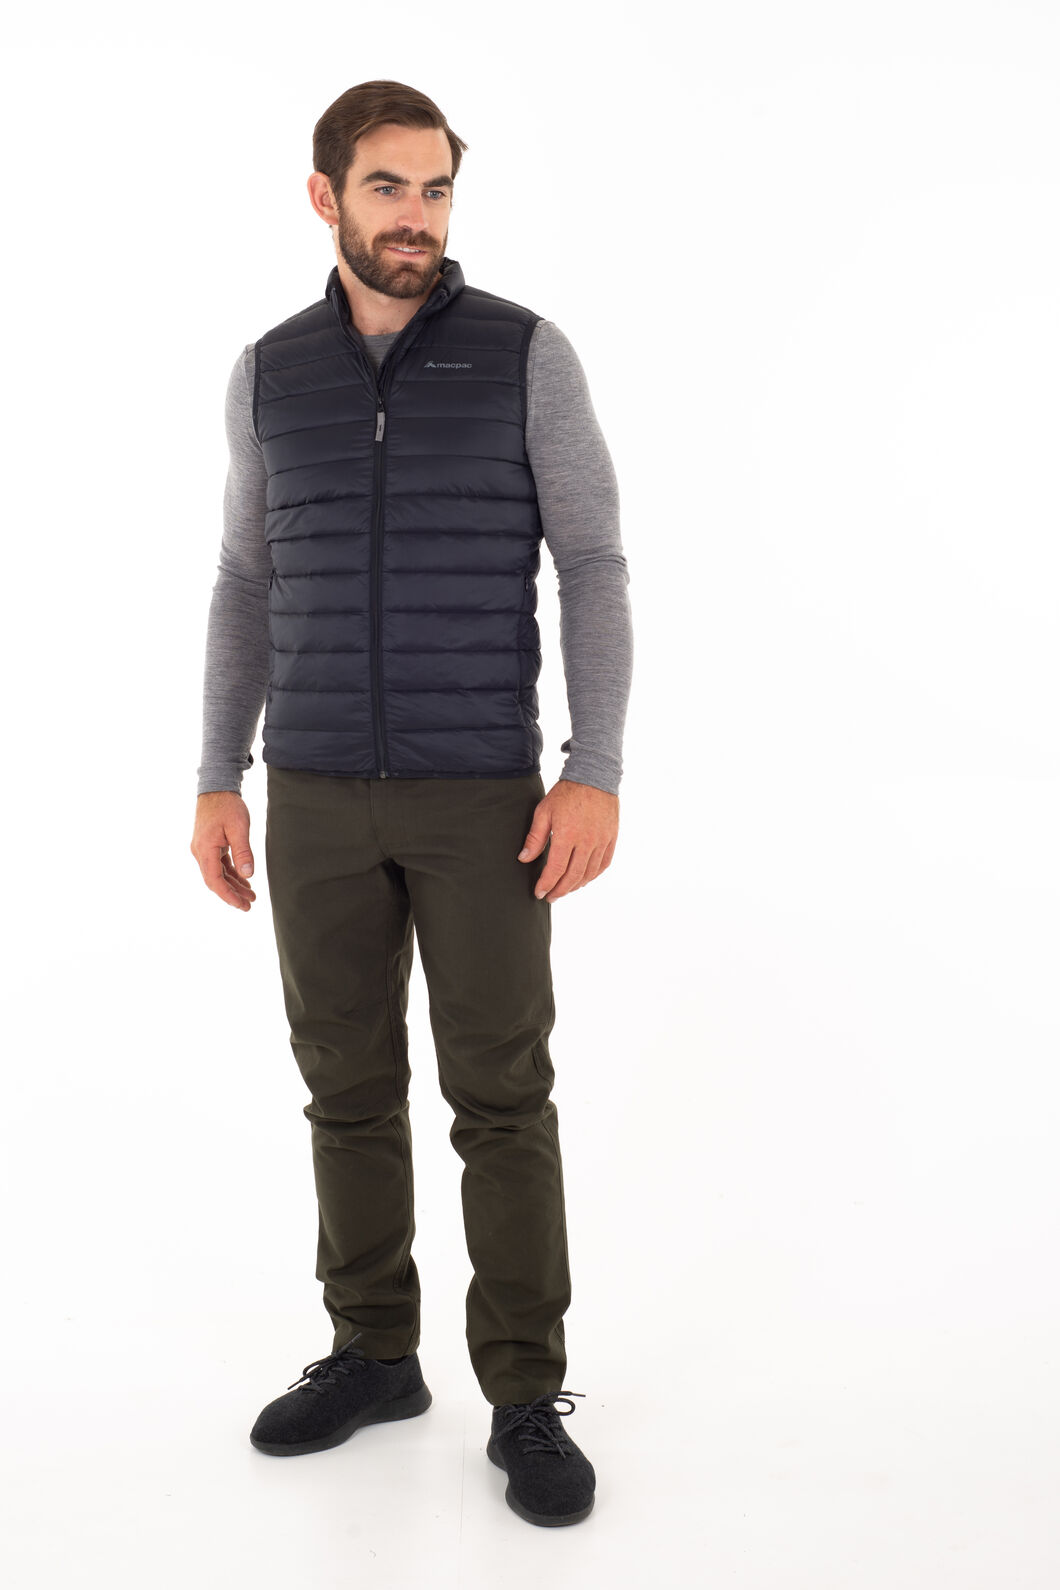 Macpac Uber Light Down Vest - Men's, Beech, hi-res